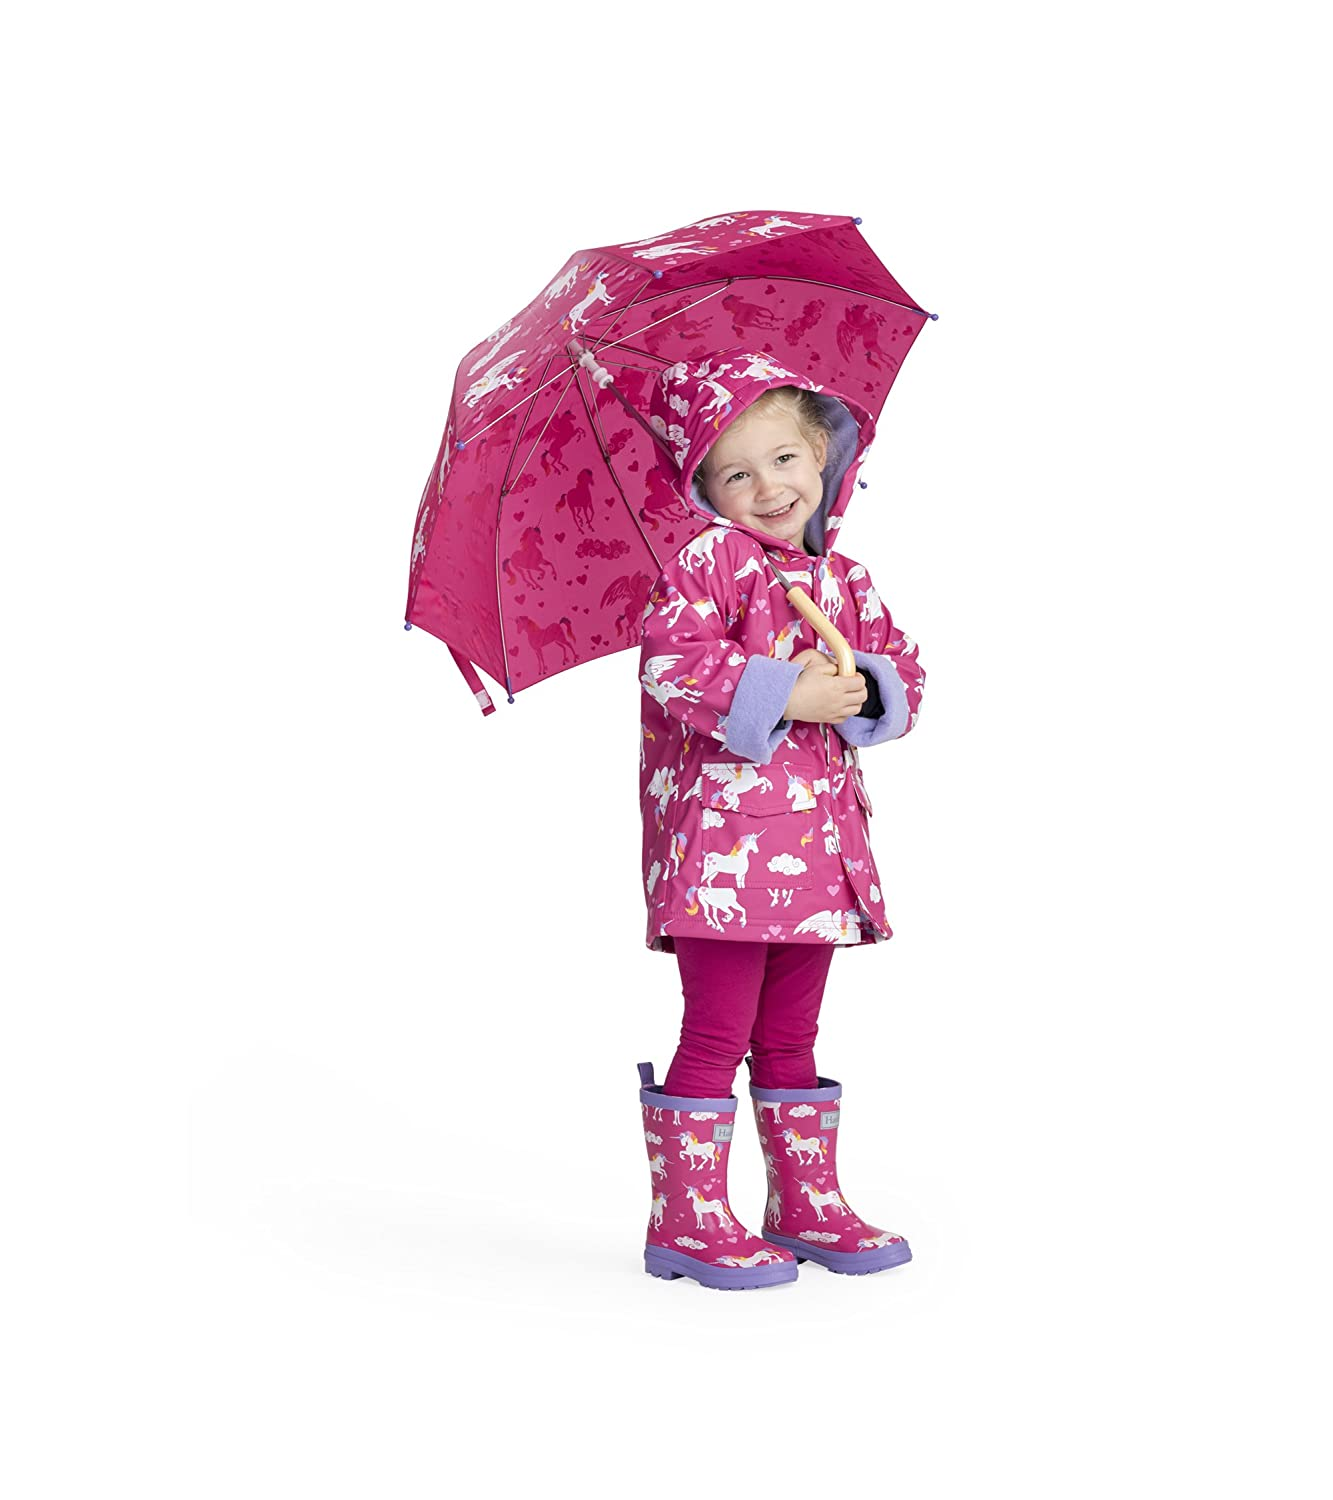 Hatley Girls Little Printed Umbrellas Galloping Horses One Size S19SHK021